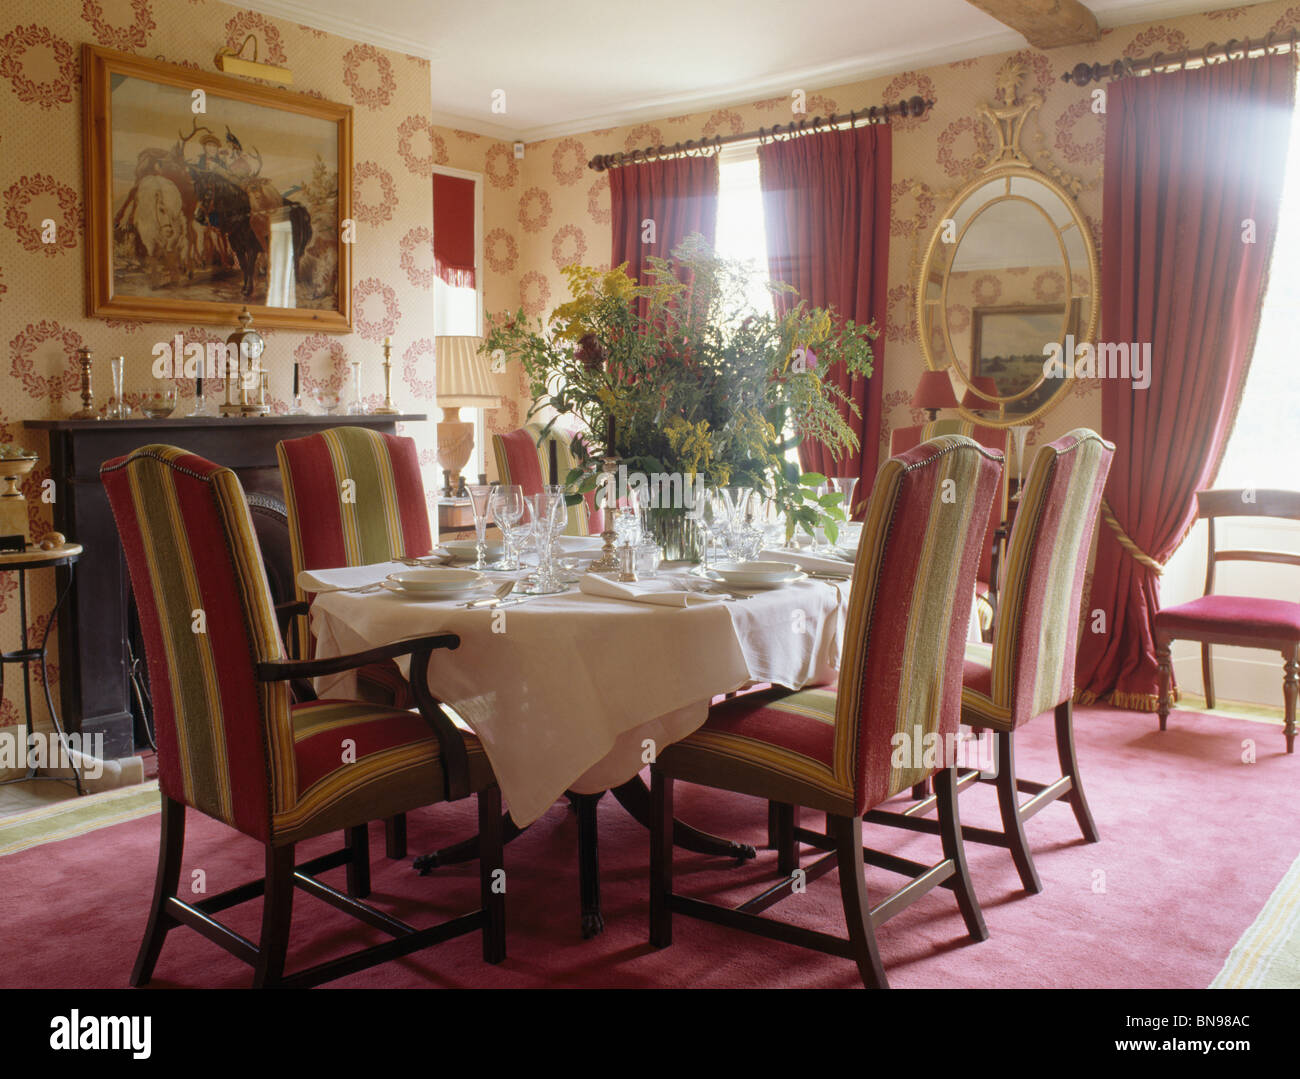 Patterned Wallpaper And Striped Upholstered Chairs In Traditional Country  Dining Room With Pink Curtains And Pink Carpet